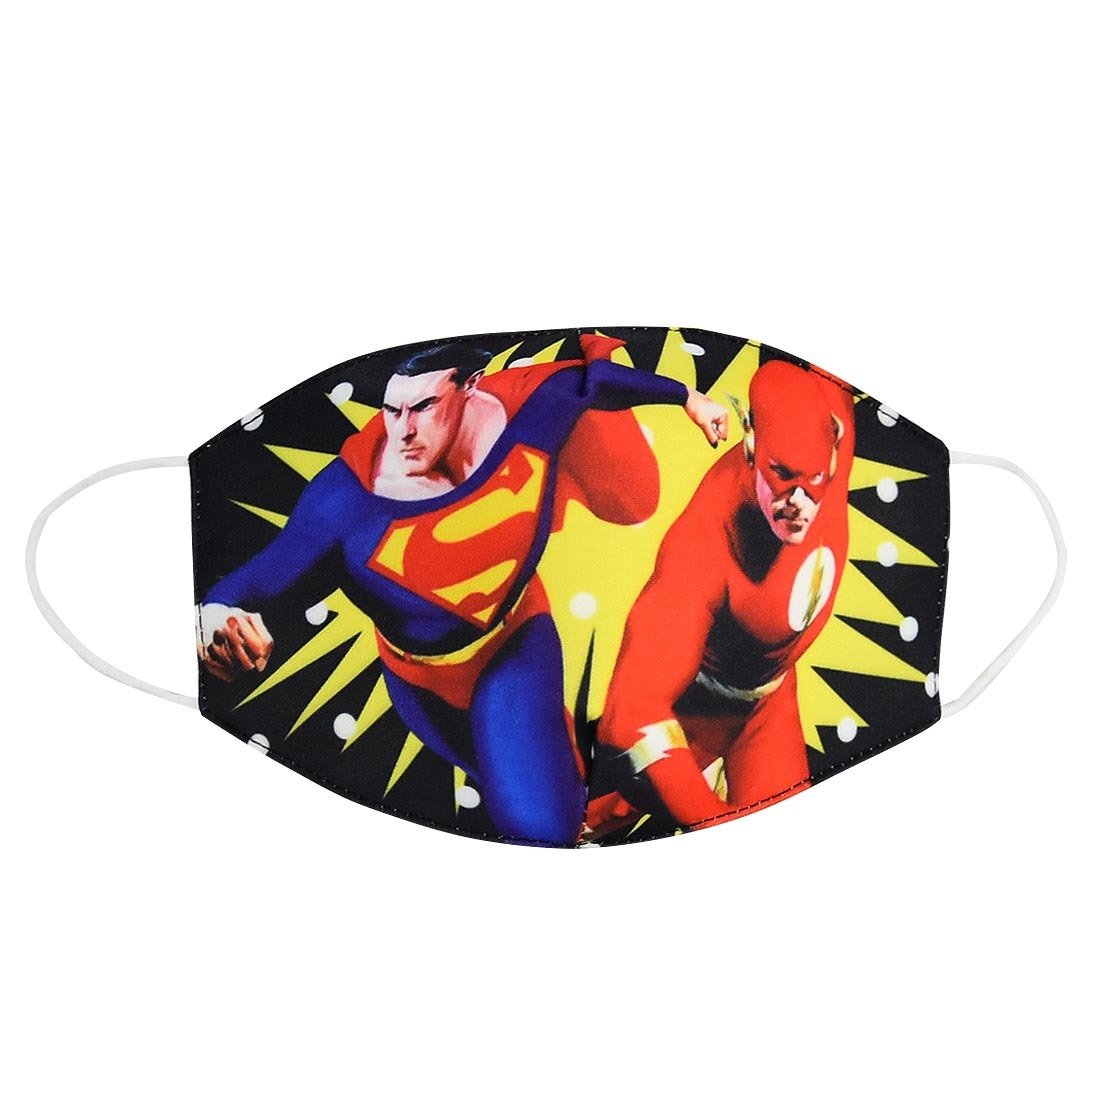 Unisex Cute Cartoon Cotton Face Mouth Printed Mask For Adult And Kids 2